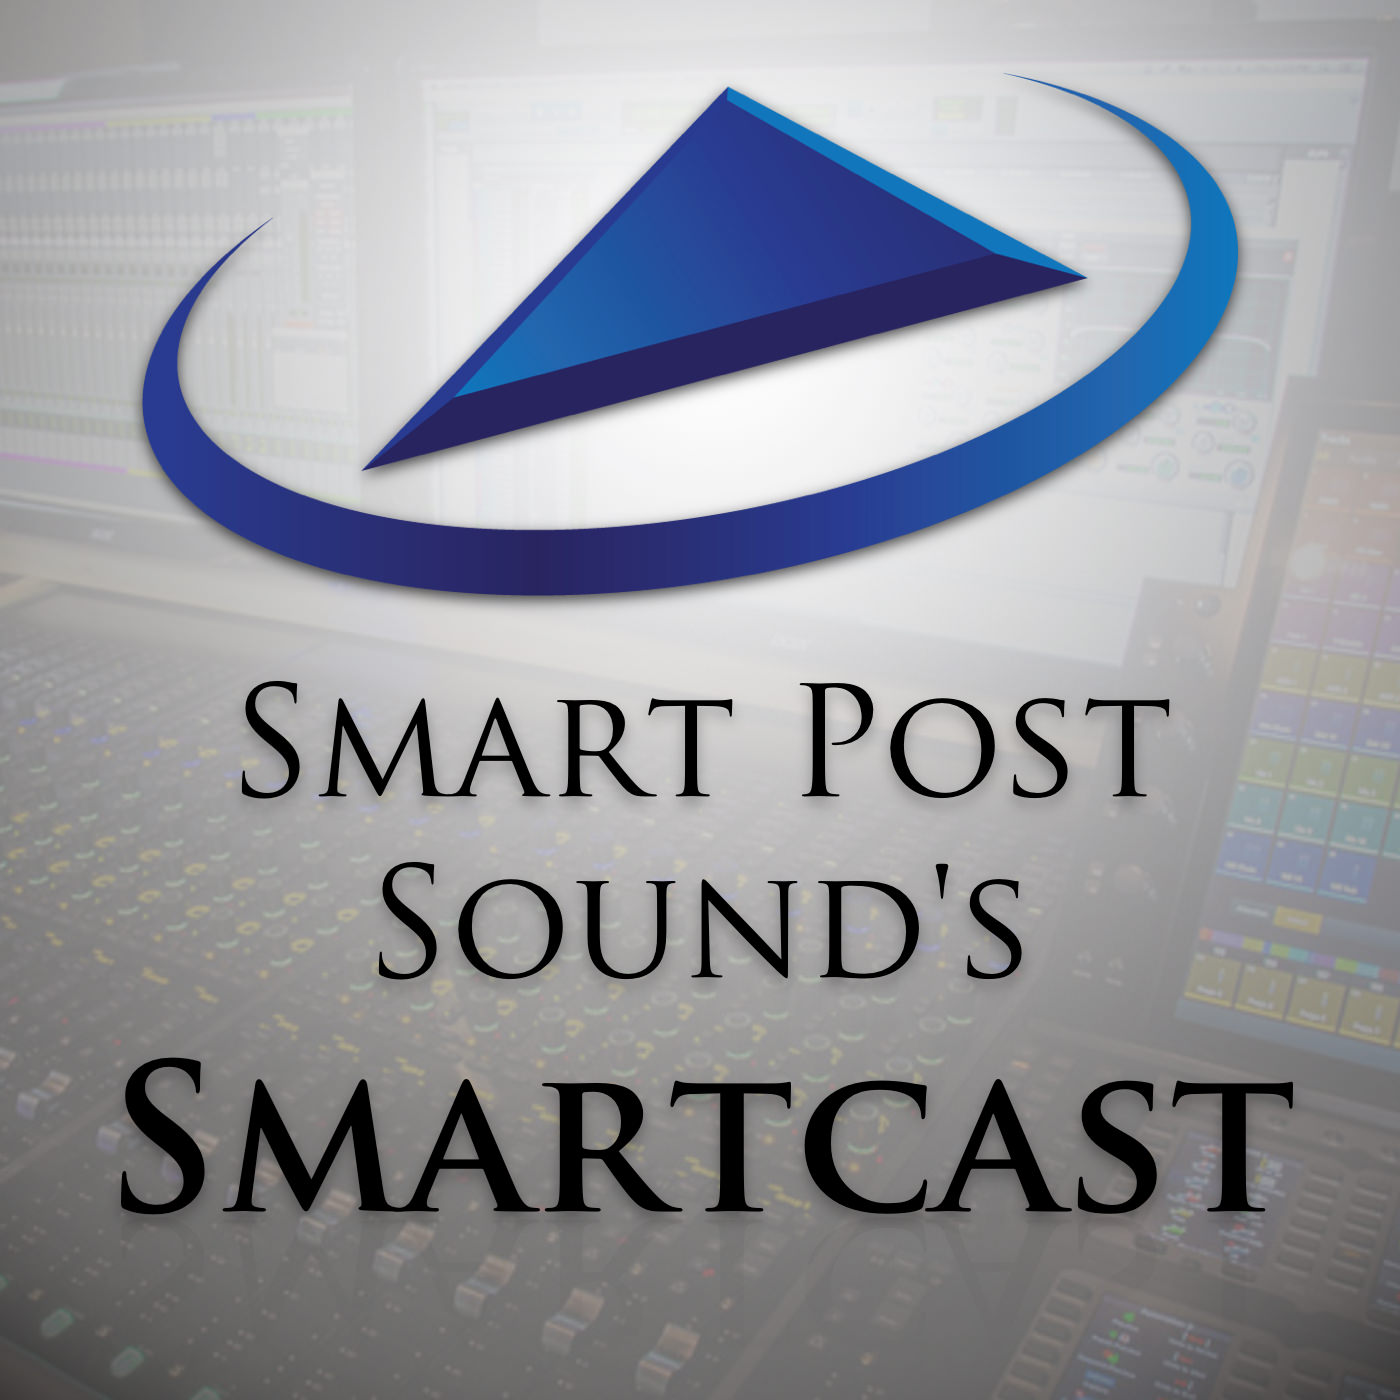 Smart Post Sound's Smartcast Podcast